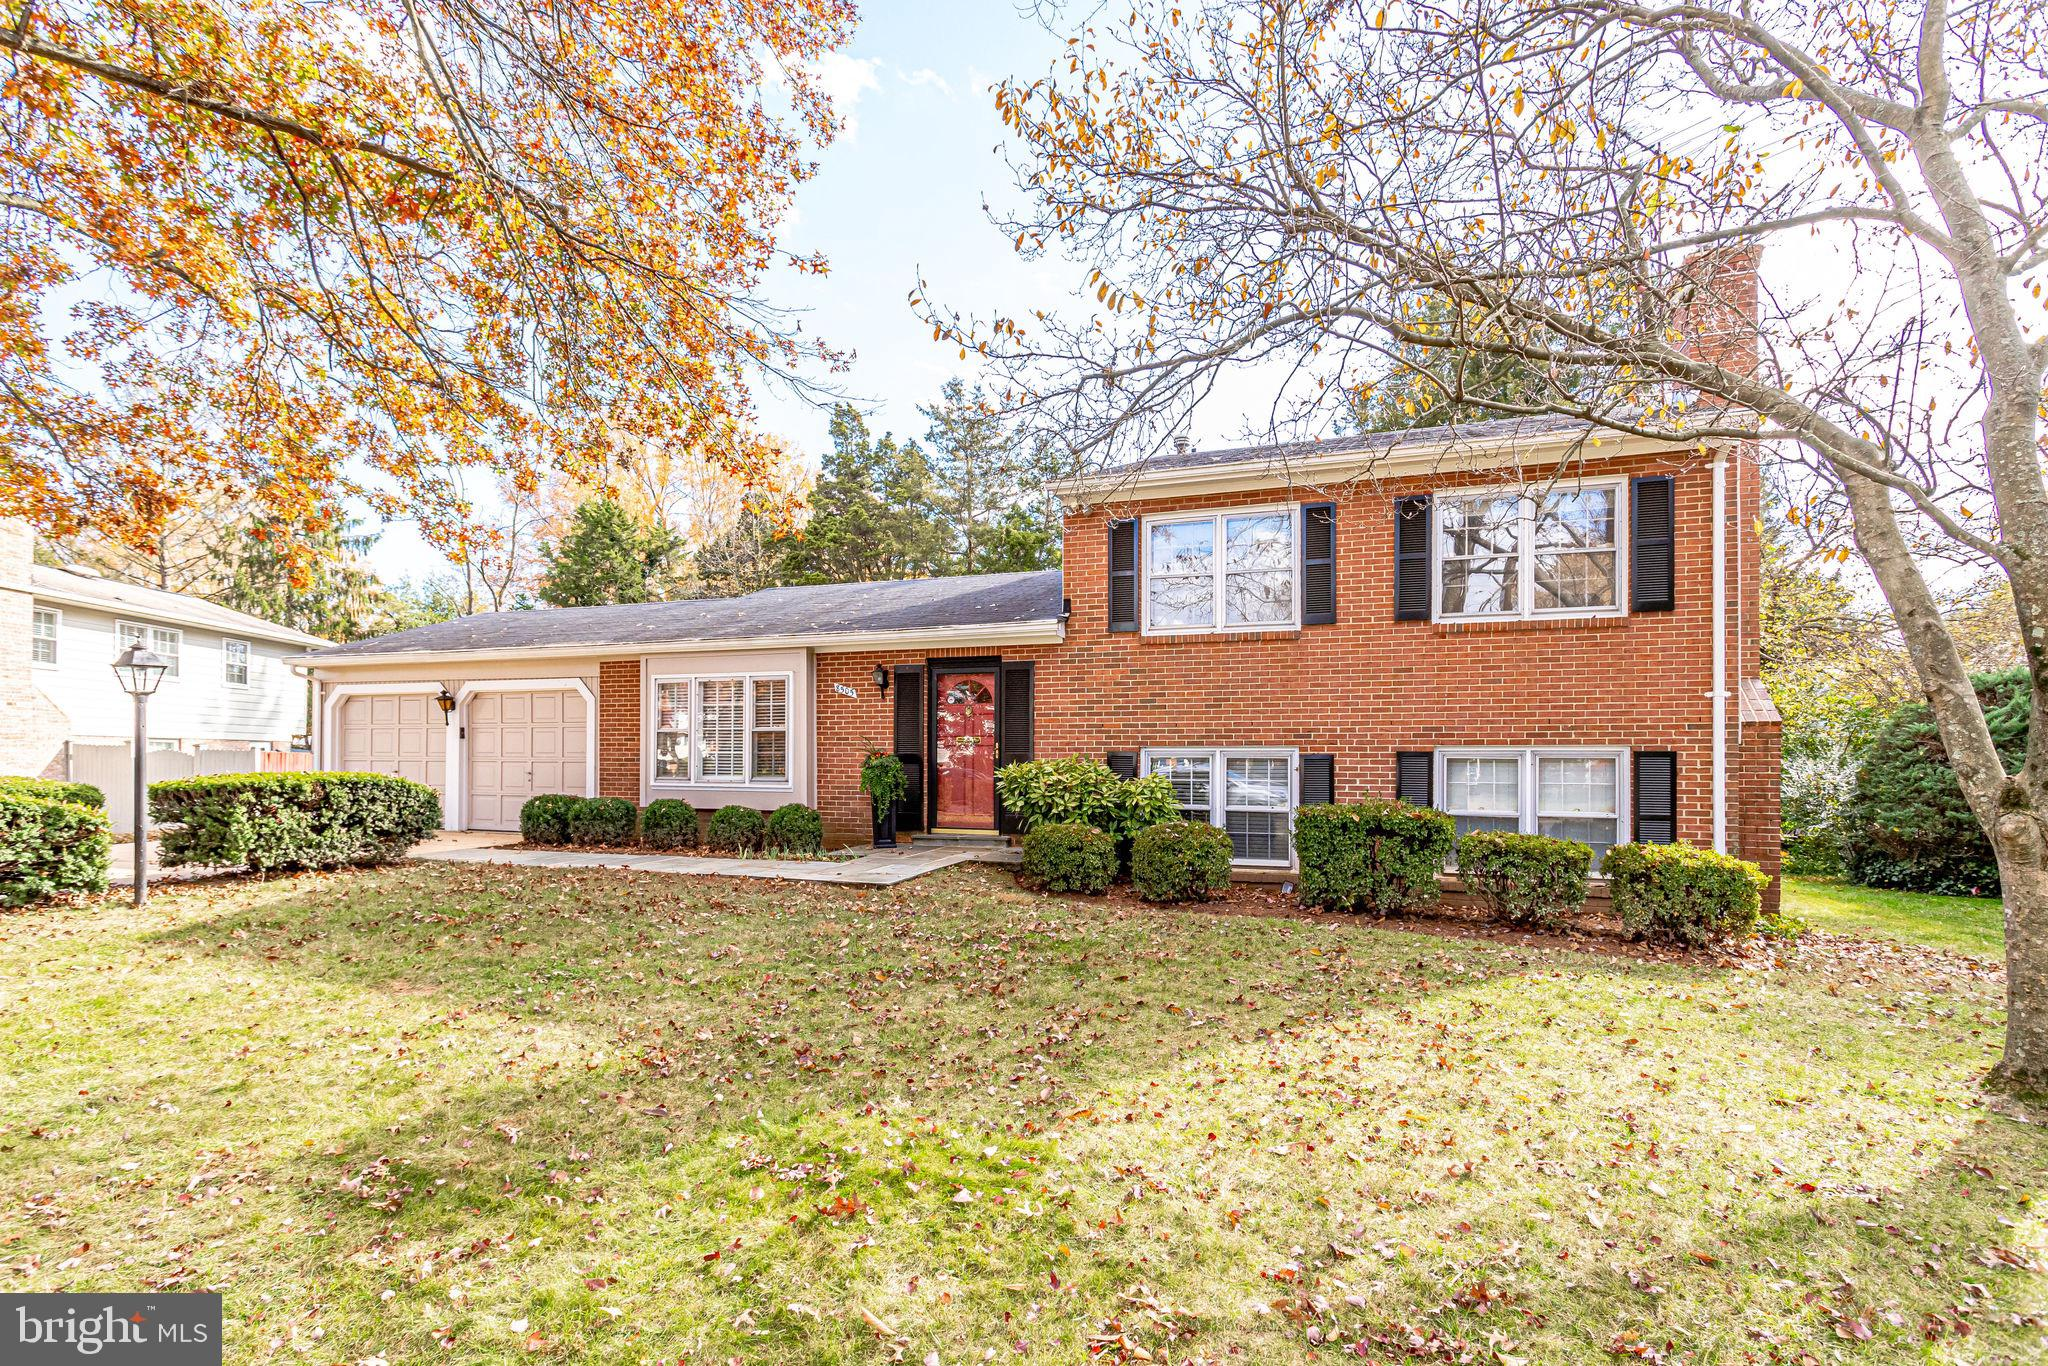 Enjoy the cul-de-sac lifestyle in this charming 4 bedroom, 2.5 bath home! You're welcomed into the f